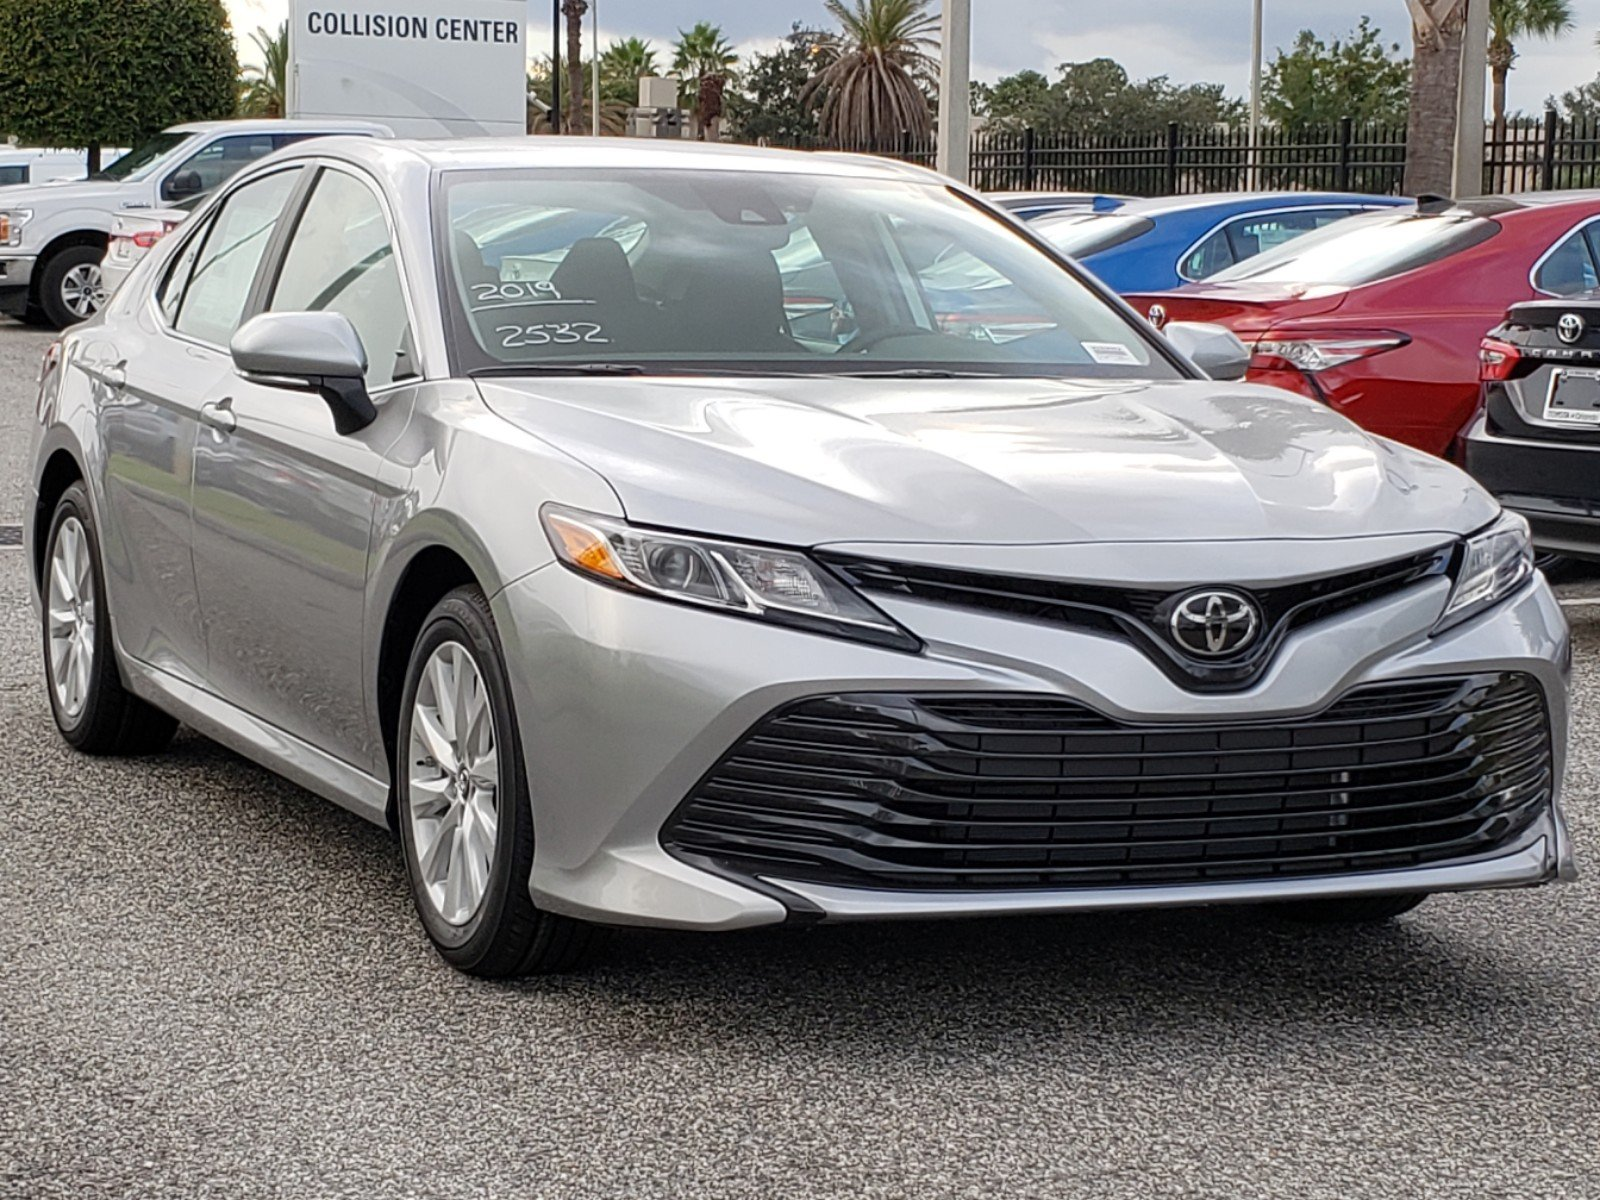 New 2019 Toyota Camry Le 4dr Car In Orlando 9250002 Toyota Of Orlando